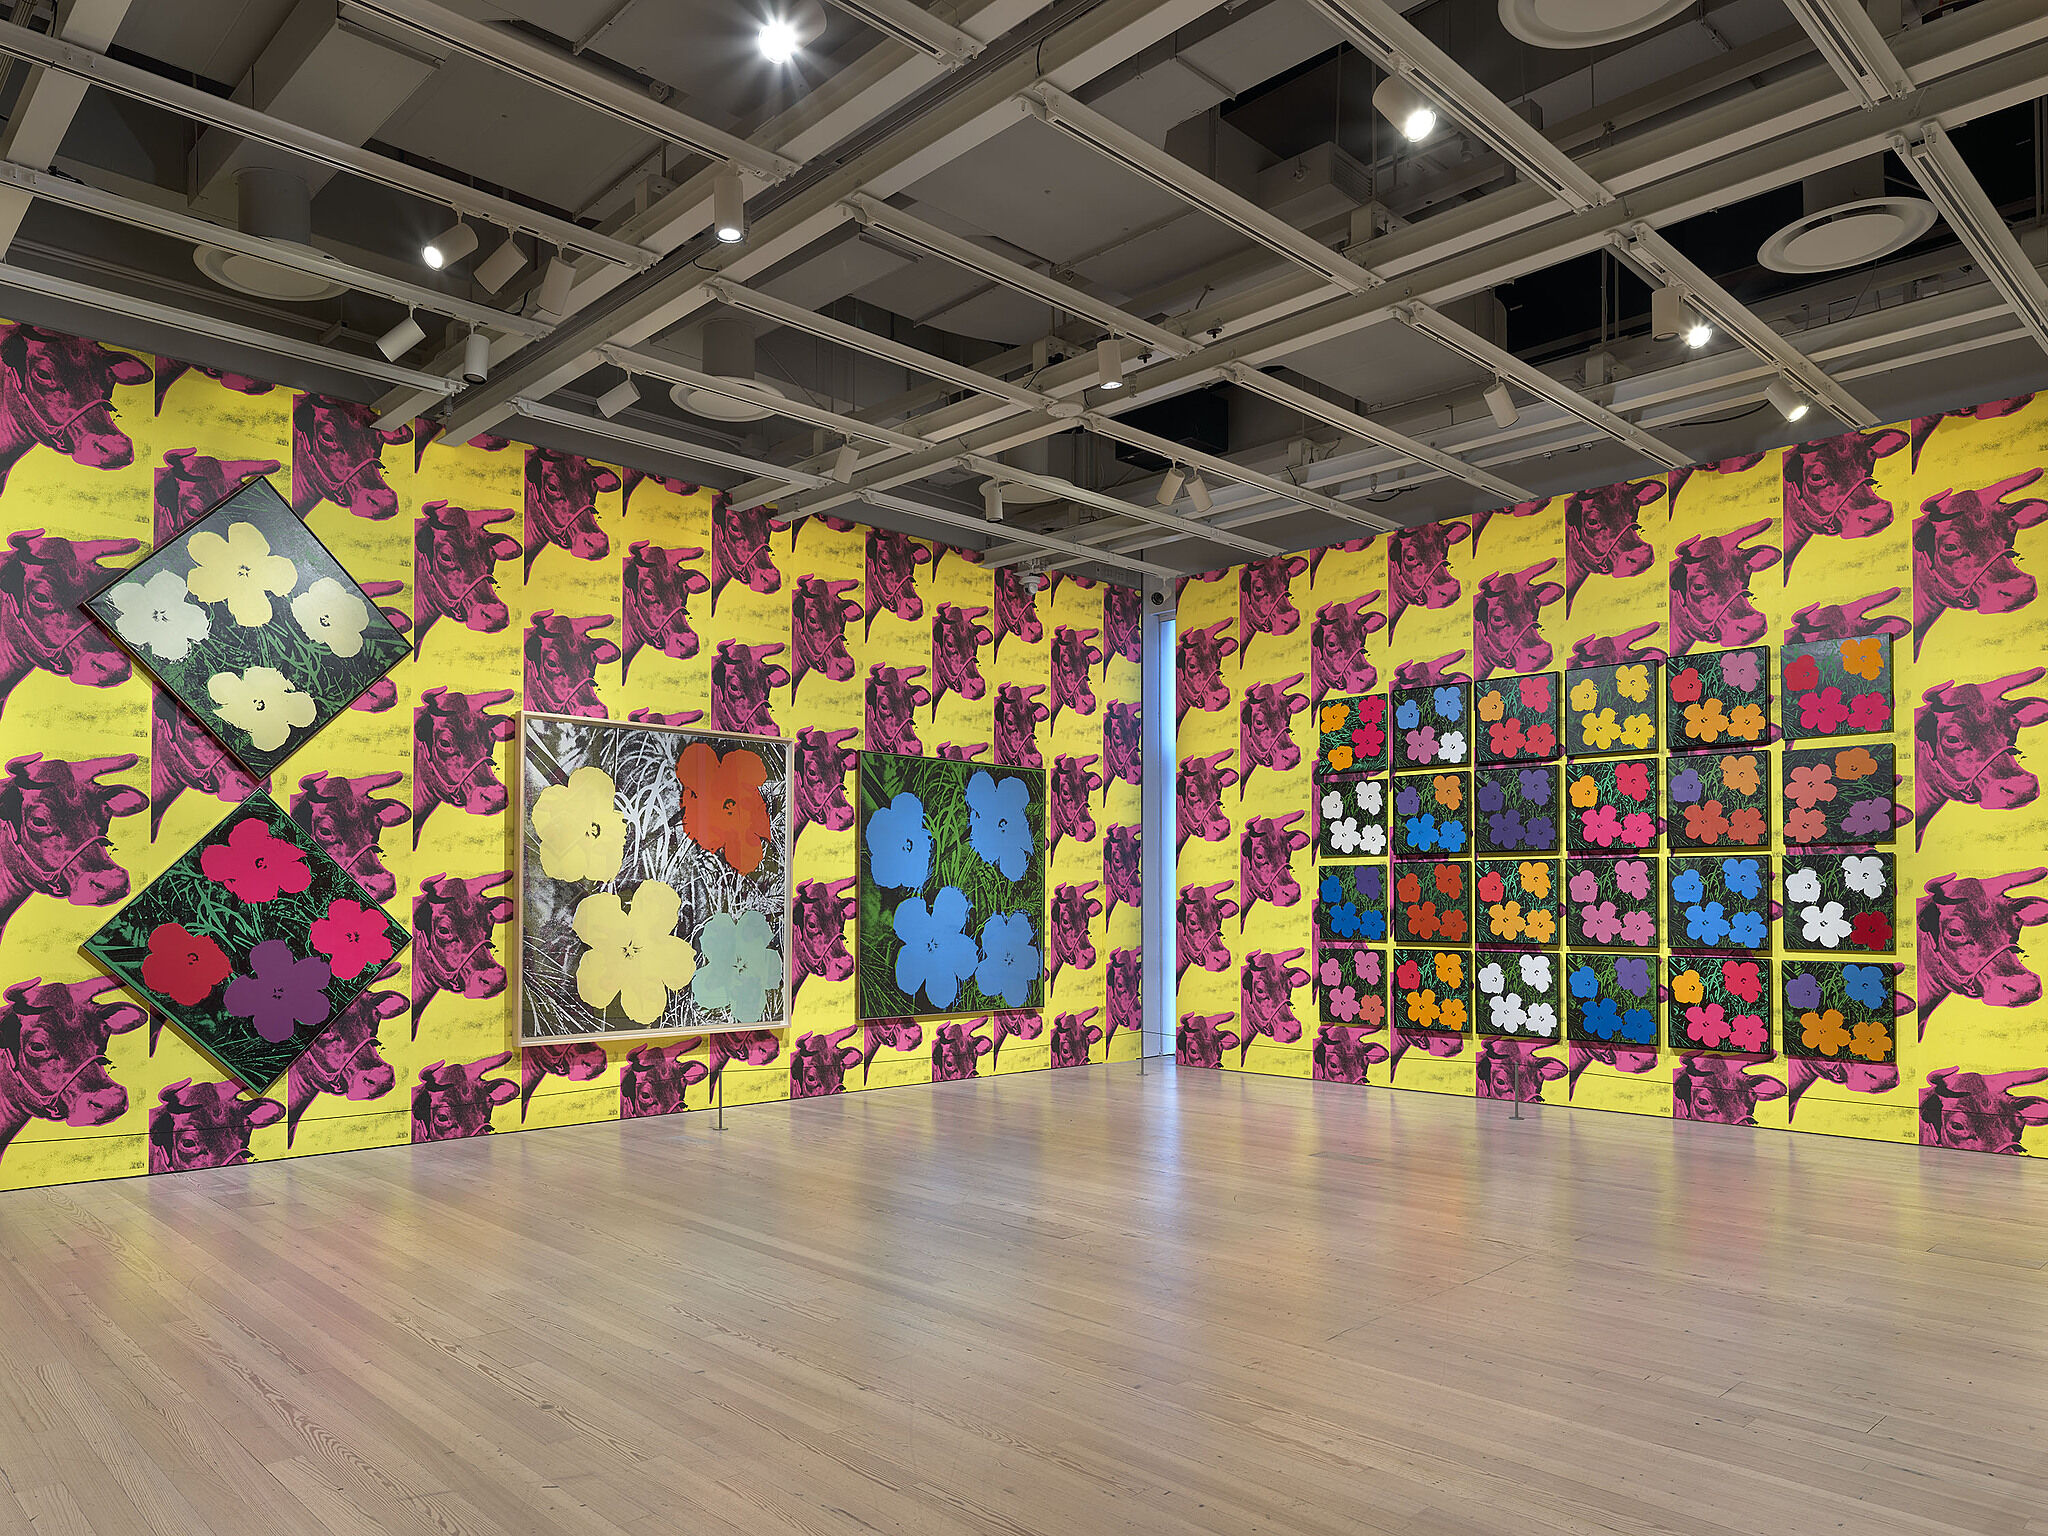 A photo of a gallery with Warhol prints filling the walls from floor to ceiling.